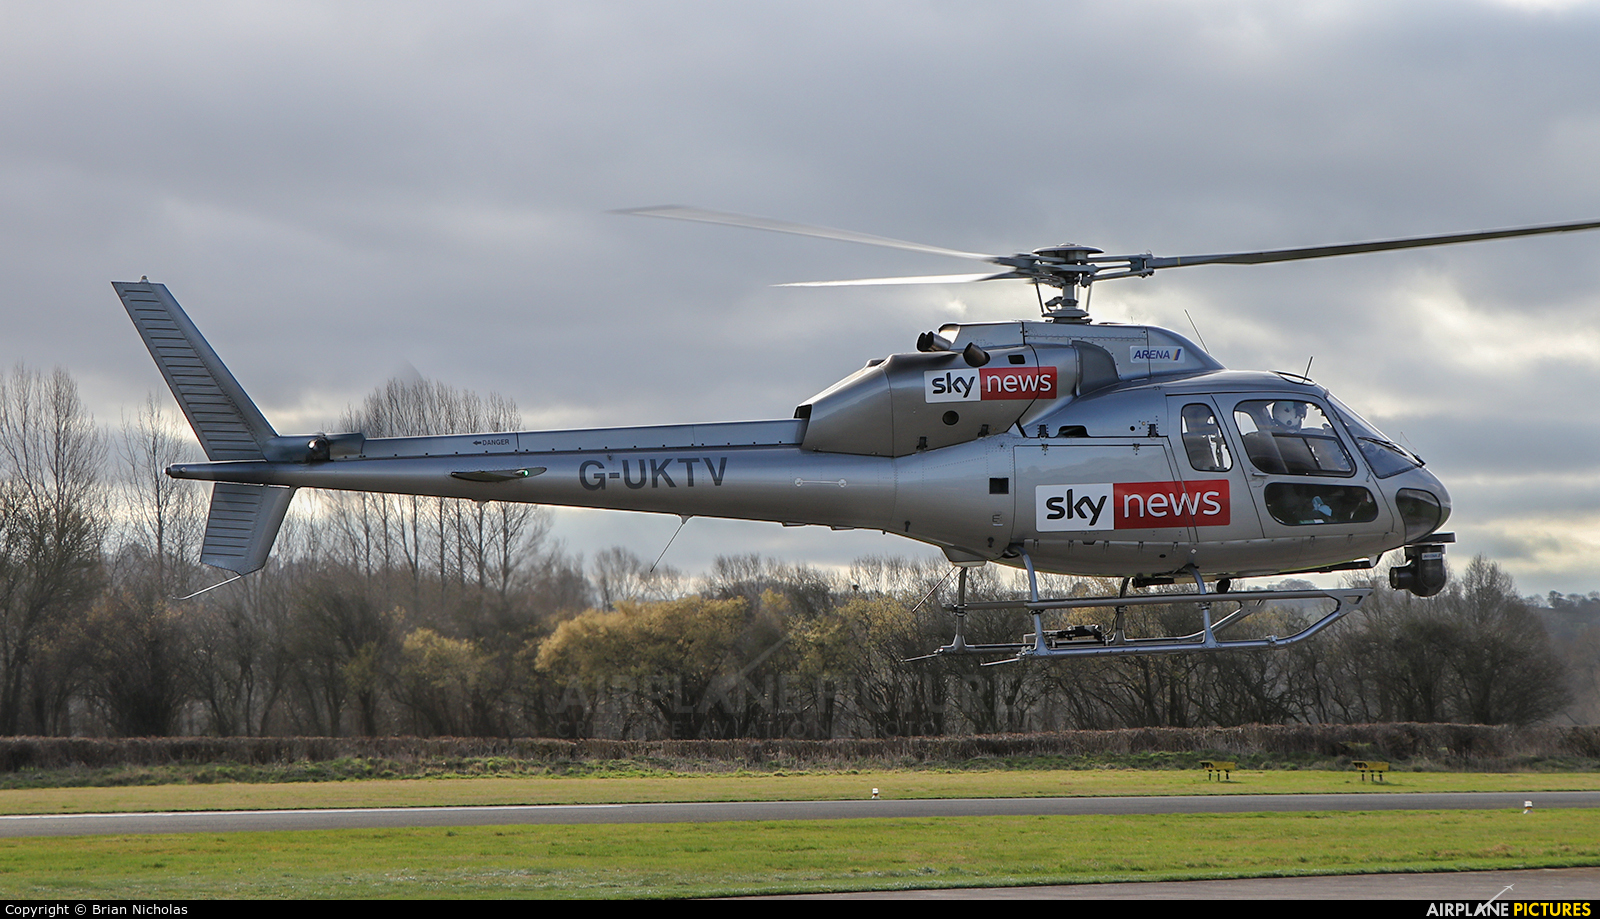 Private G-UKTV aircraft at Welshpool